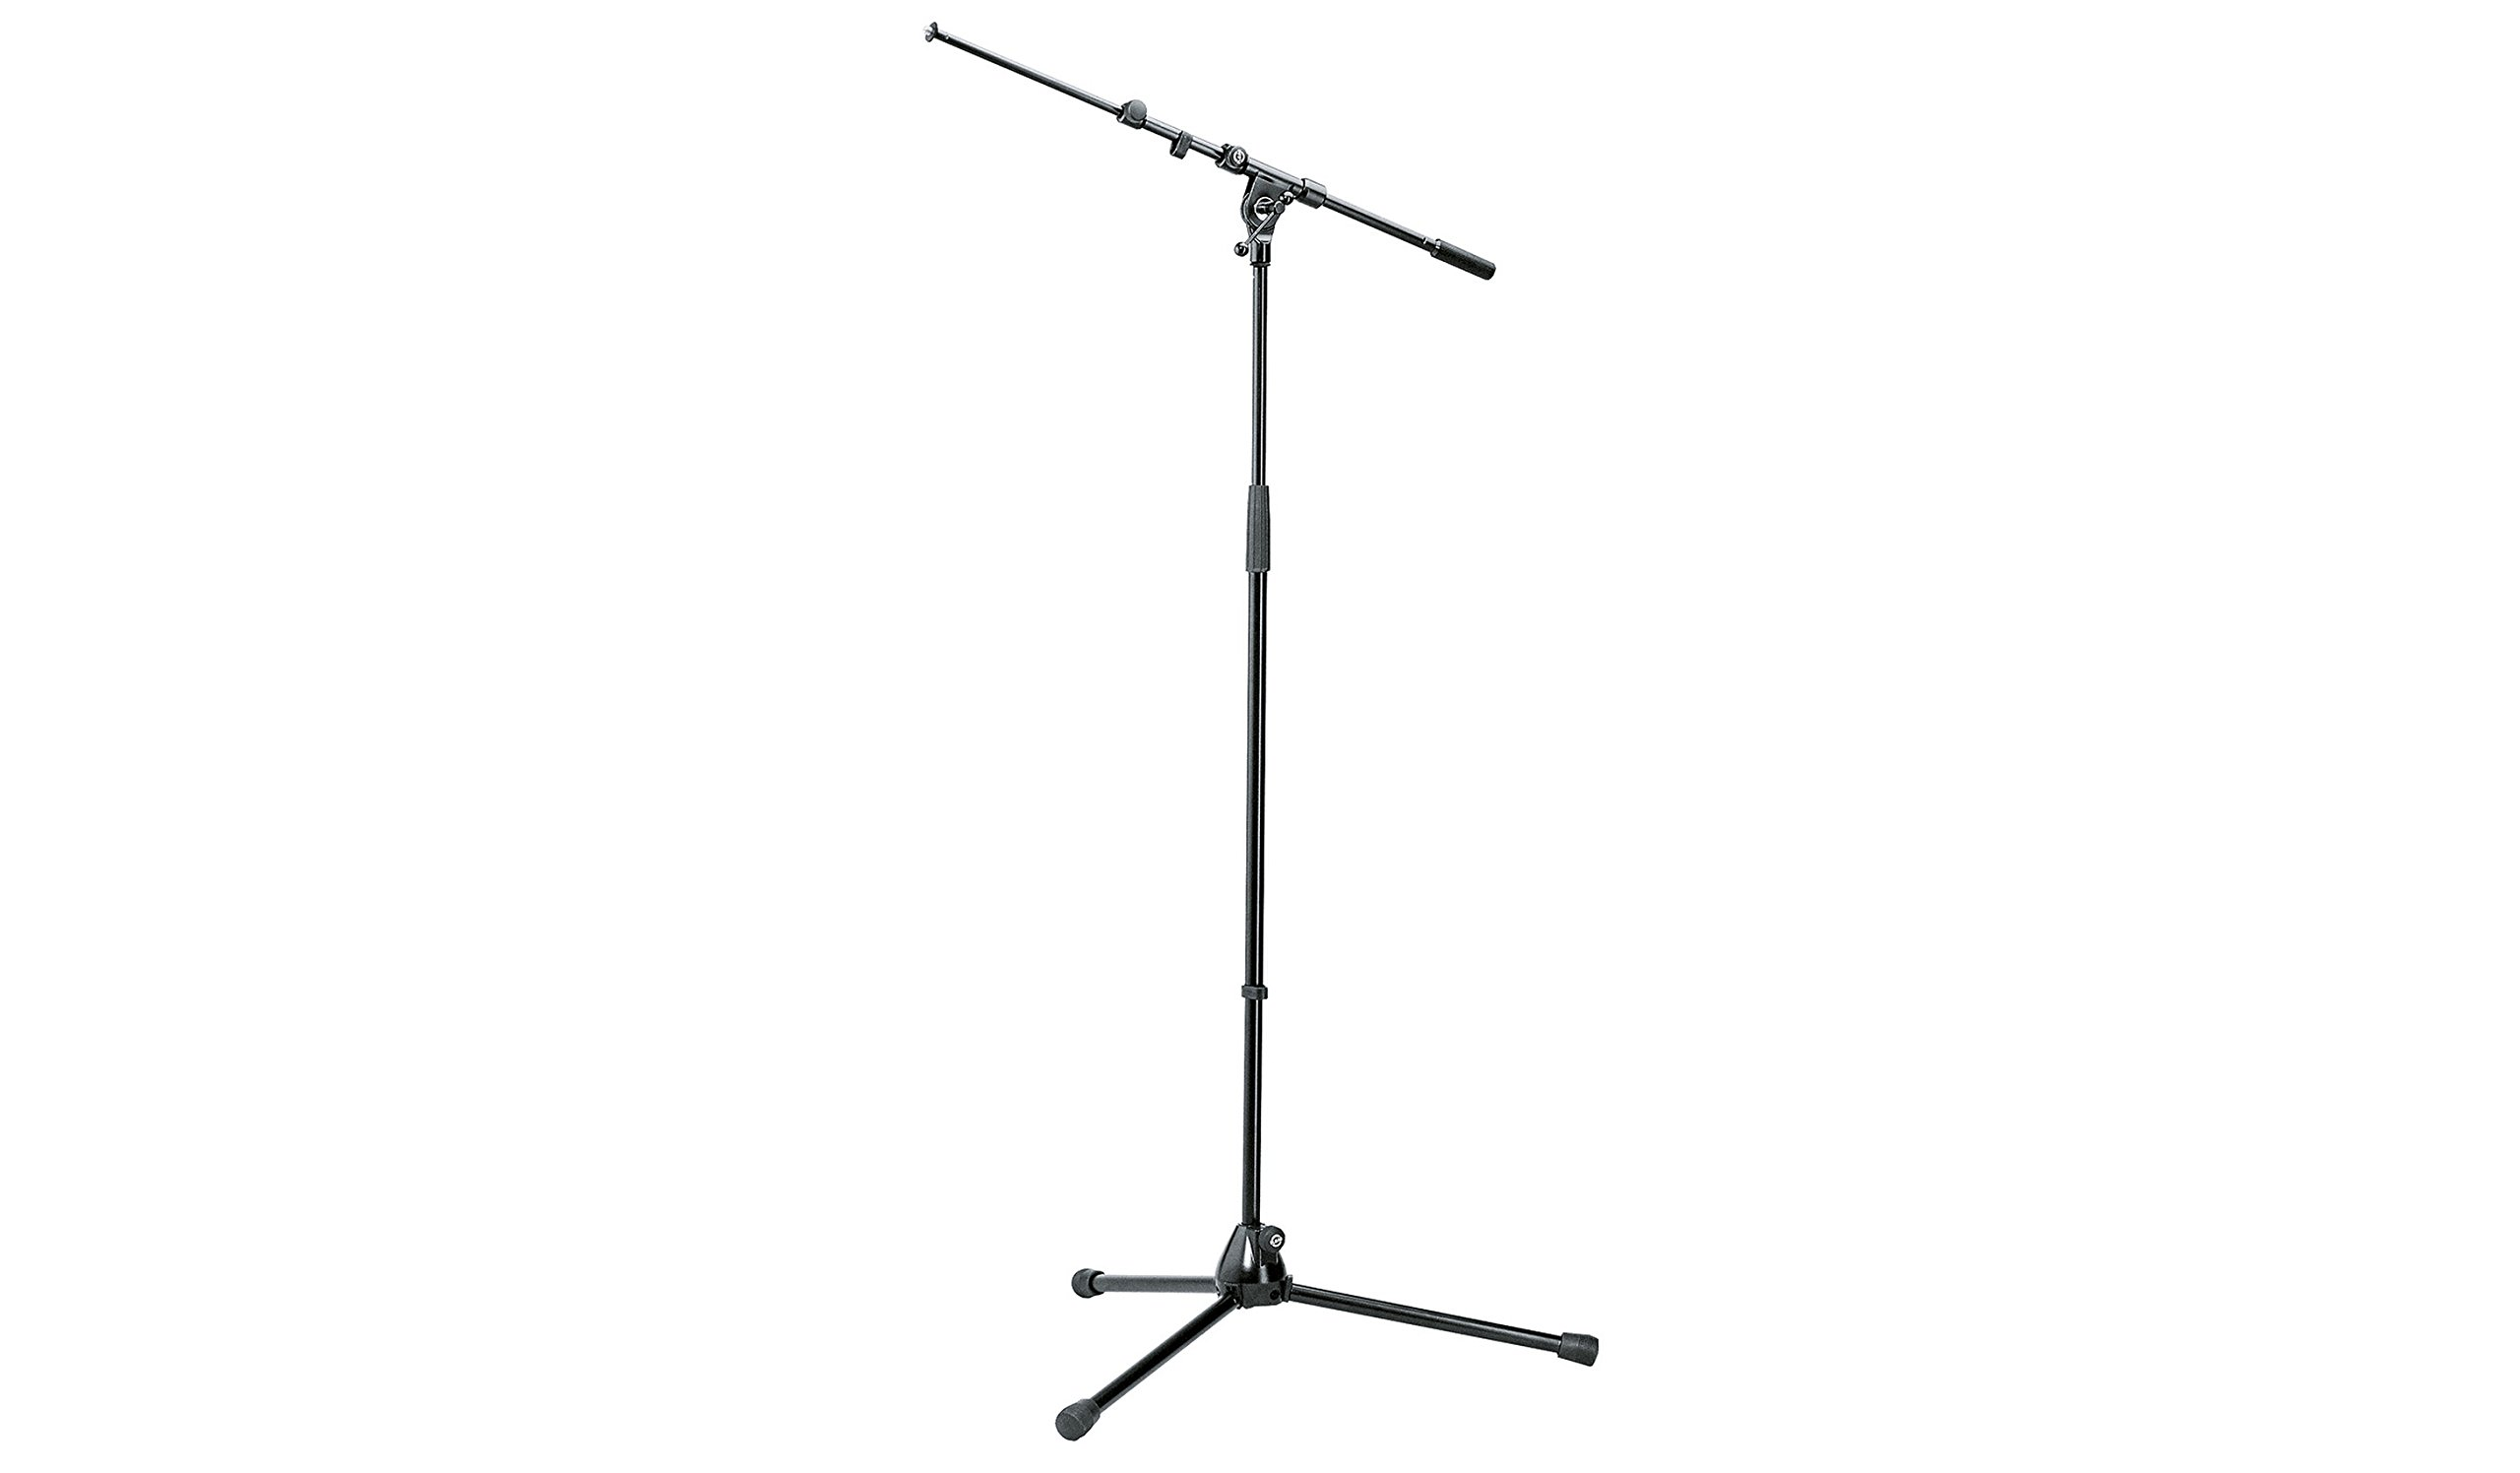 K&M Micorphone Stand with Telescopic Boom Arm is Sturdy, Zinc Die-Cast Tripod Base with Foldable Legs. Black 21090 by K & M